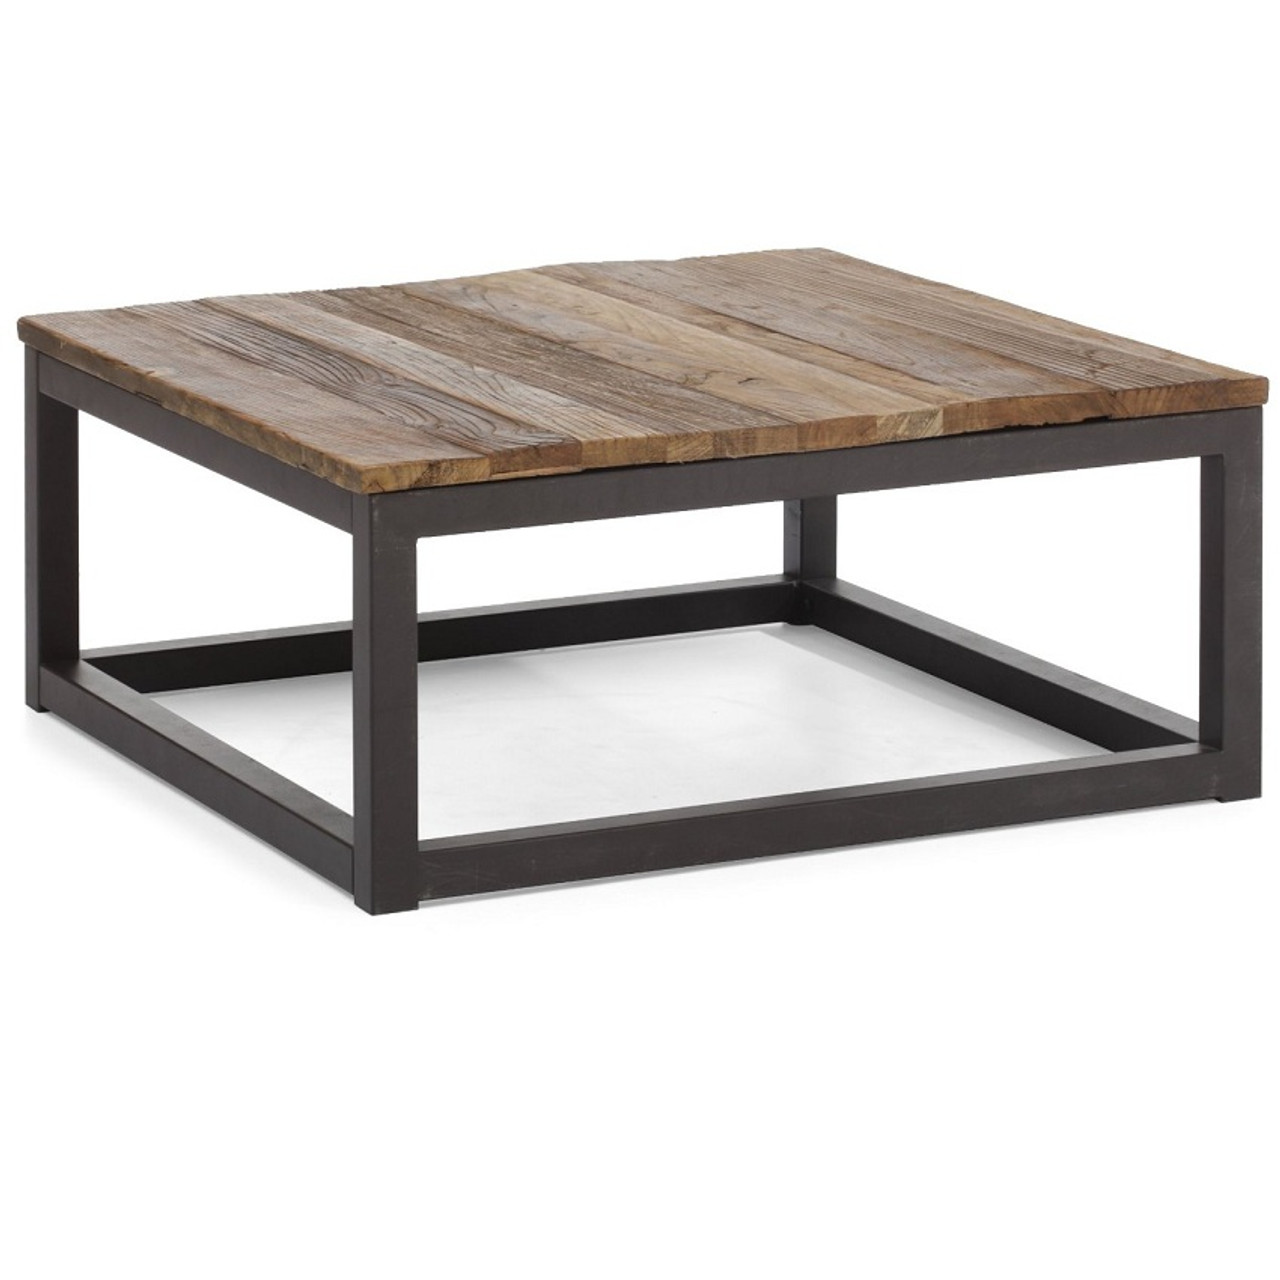 civic wood and metal square coffee table | zin home Wood Coffee Table